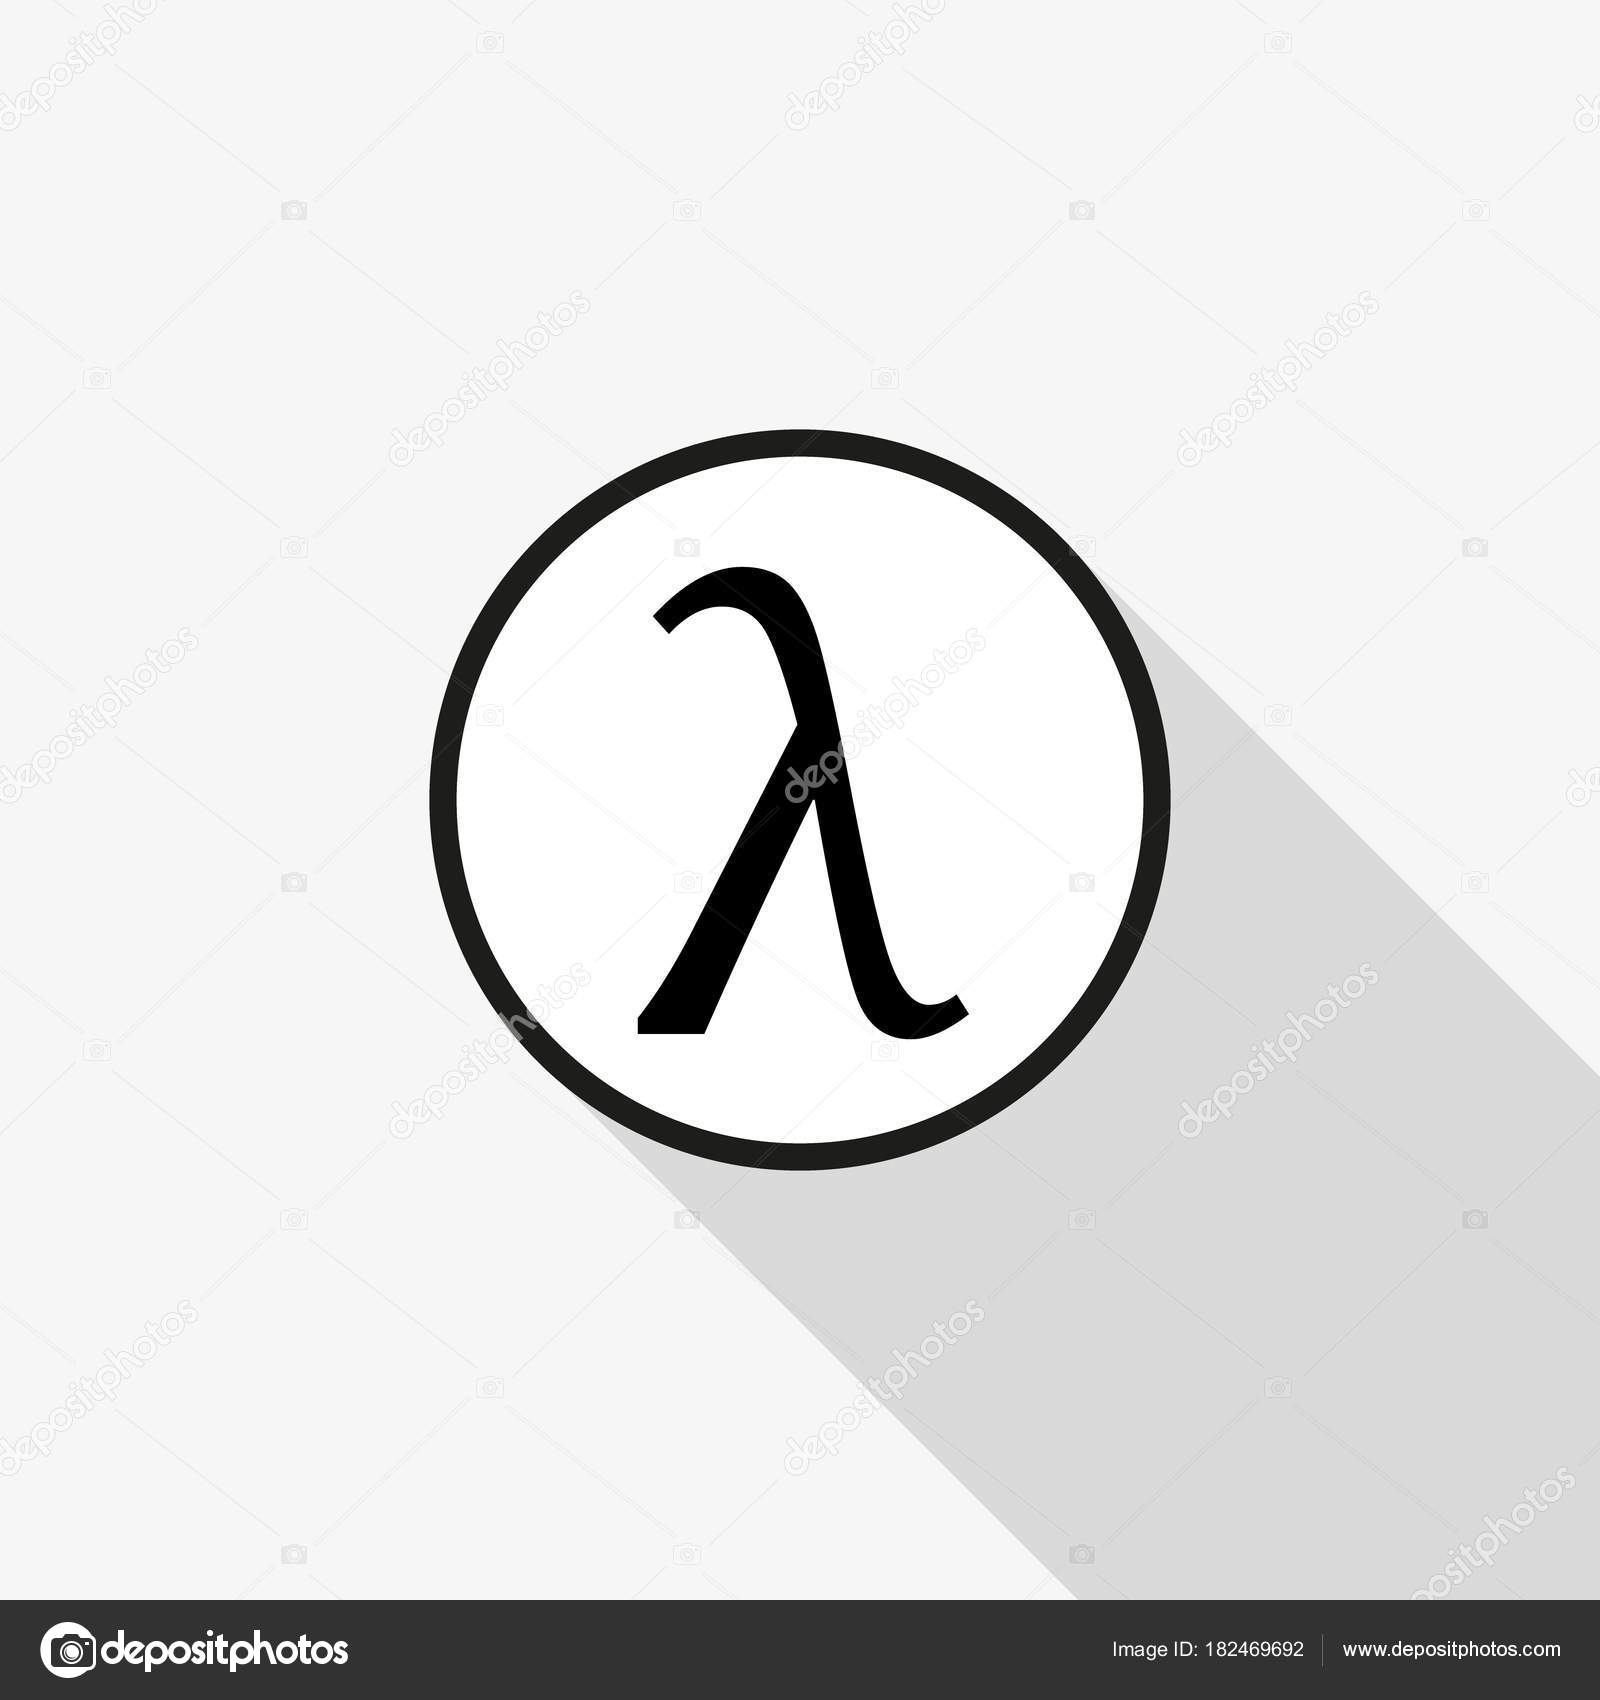 Greek Letter Lambda Symbol With A Long Shadow On The Background